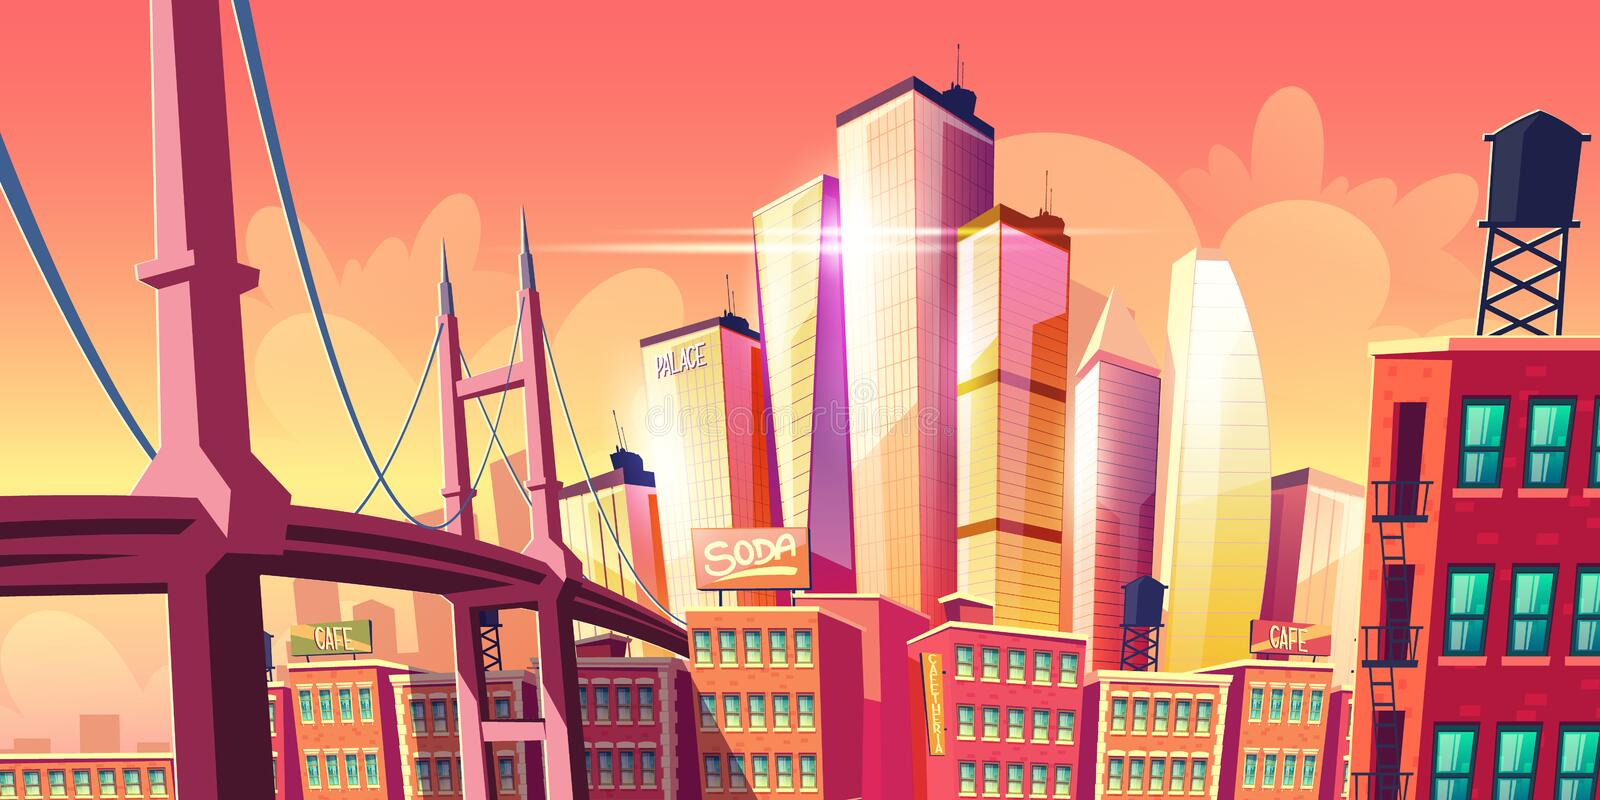 Growing future city metropolis background, bridge. Growing future city metropolis background with bridge at old district houses, retro architecture buildings and stock illustration